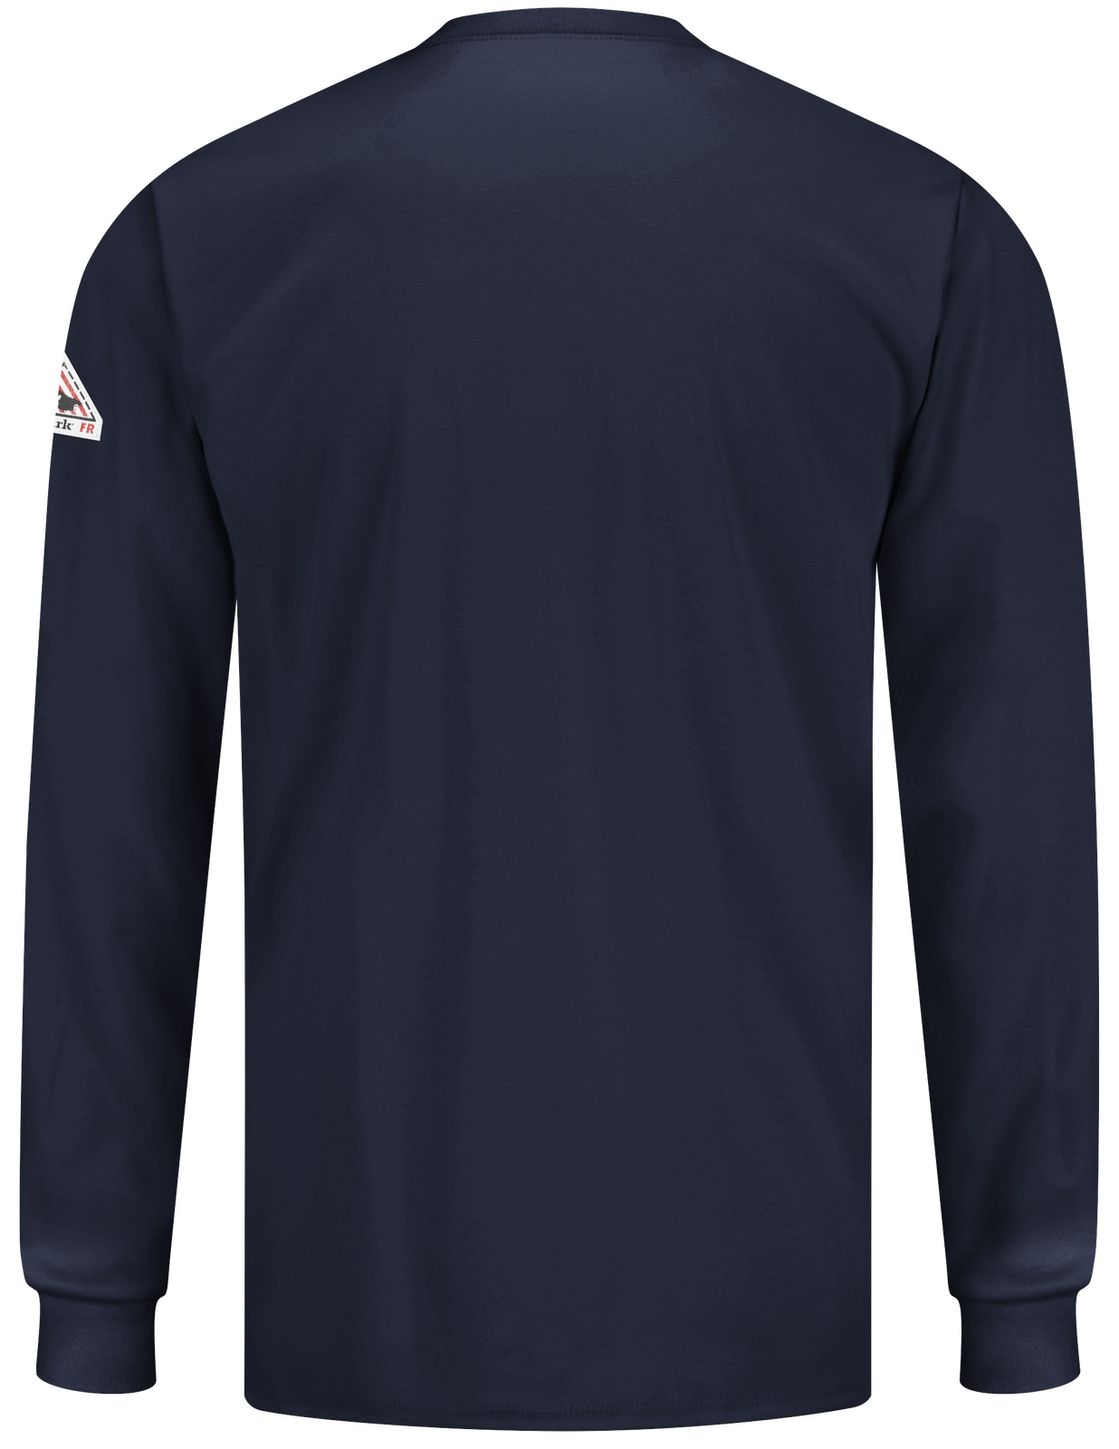 bulwark-fr-t-shirt-set2-lightweight-long-sleeve-tagless-navy-back.jpg